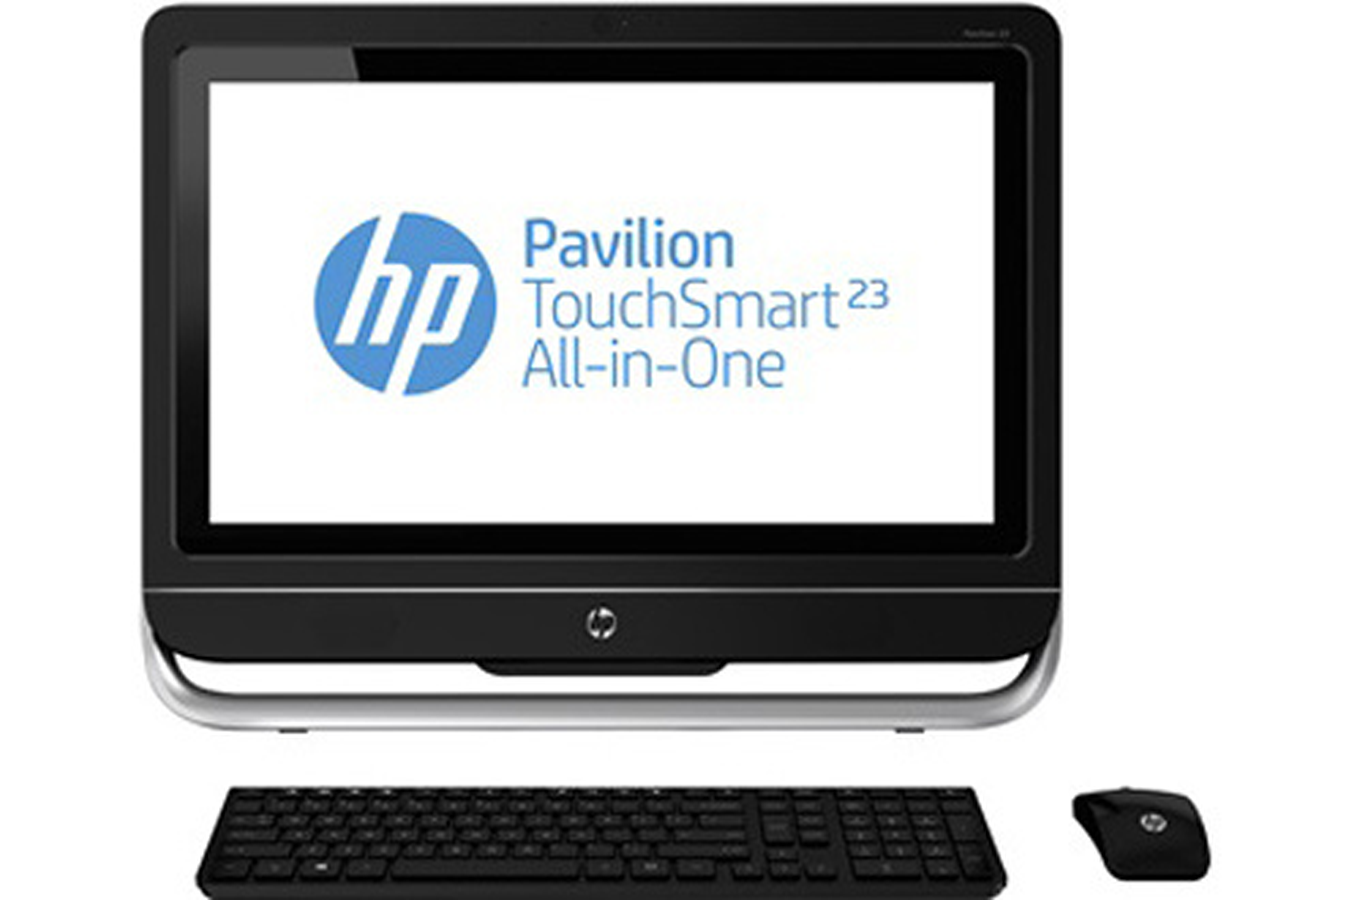 pc de bureau hp pavilion touchsmart 23 f210ef. Black Bedroom Furniture Sets. Home Design Ideas